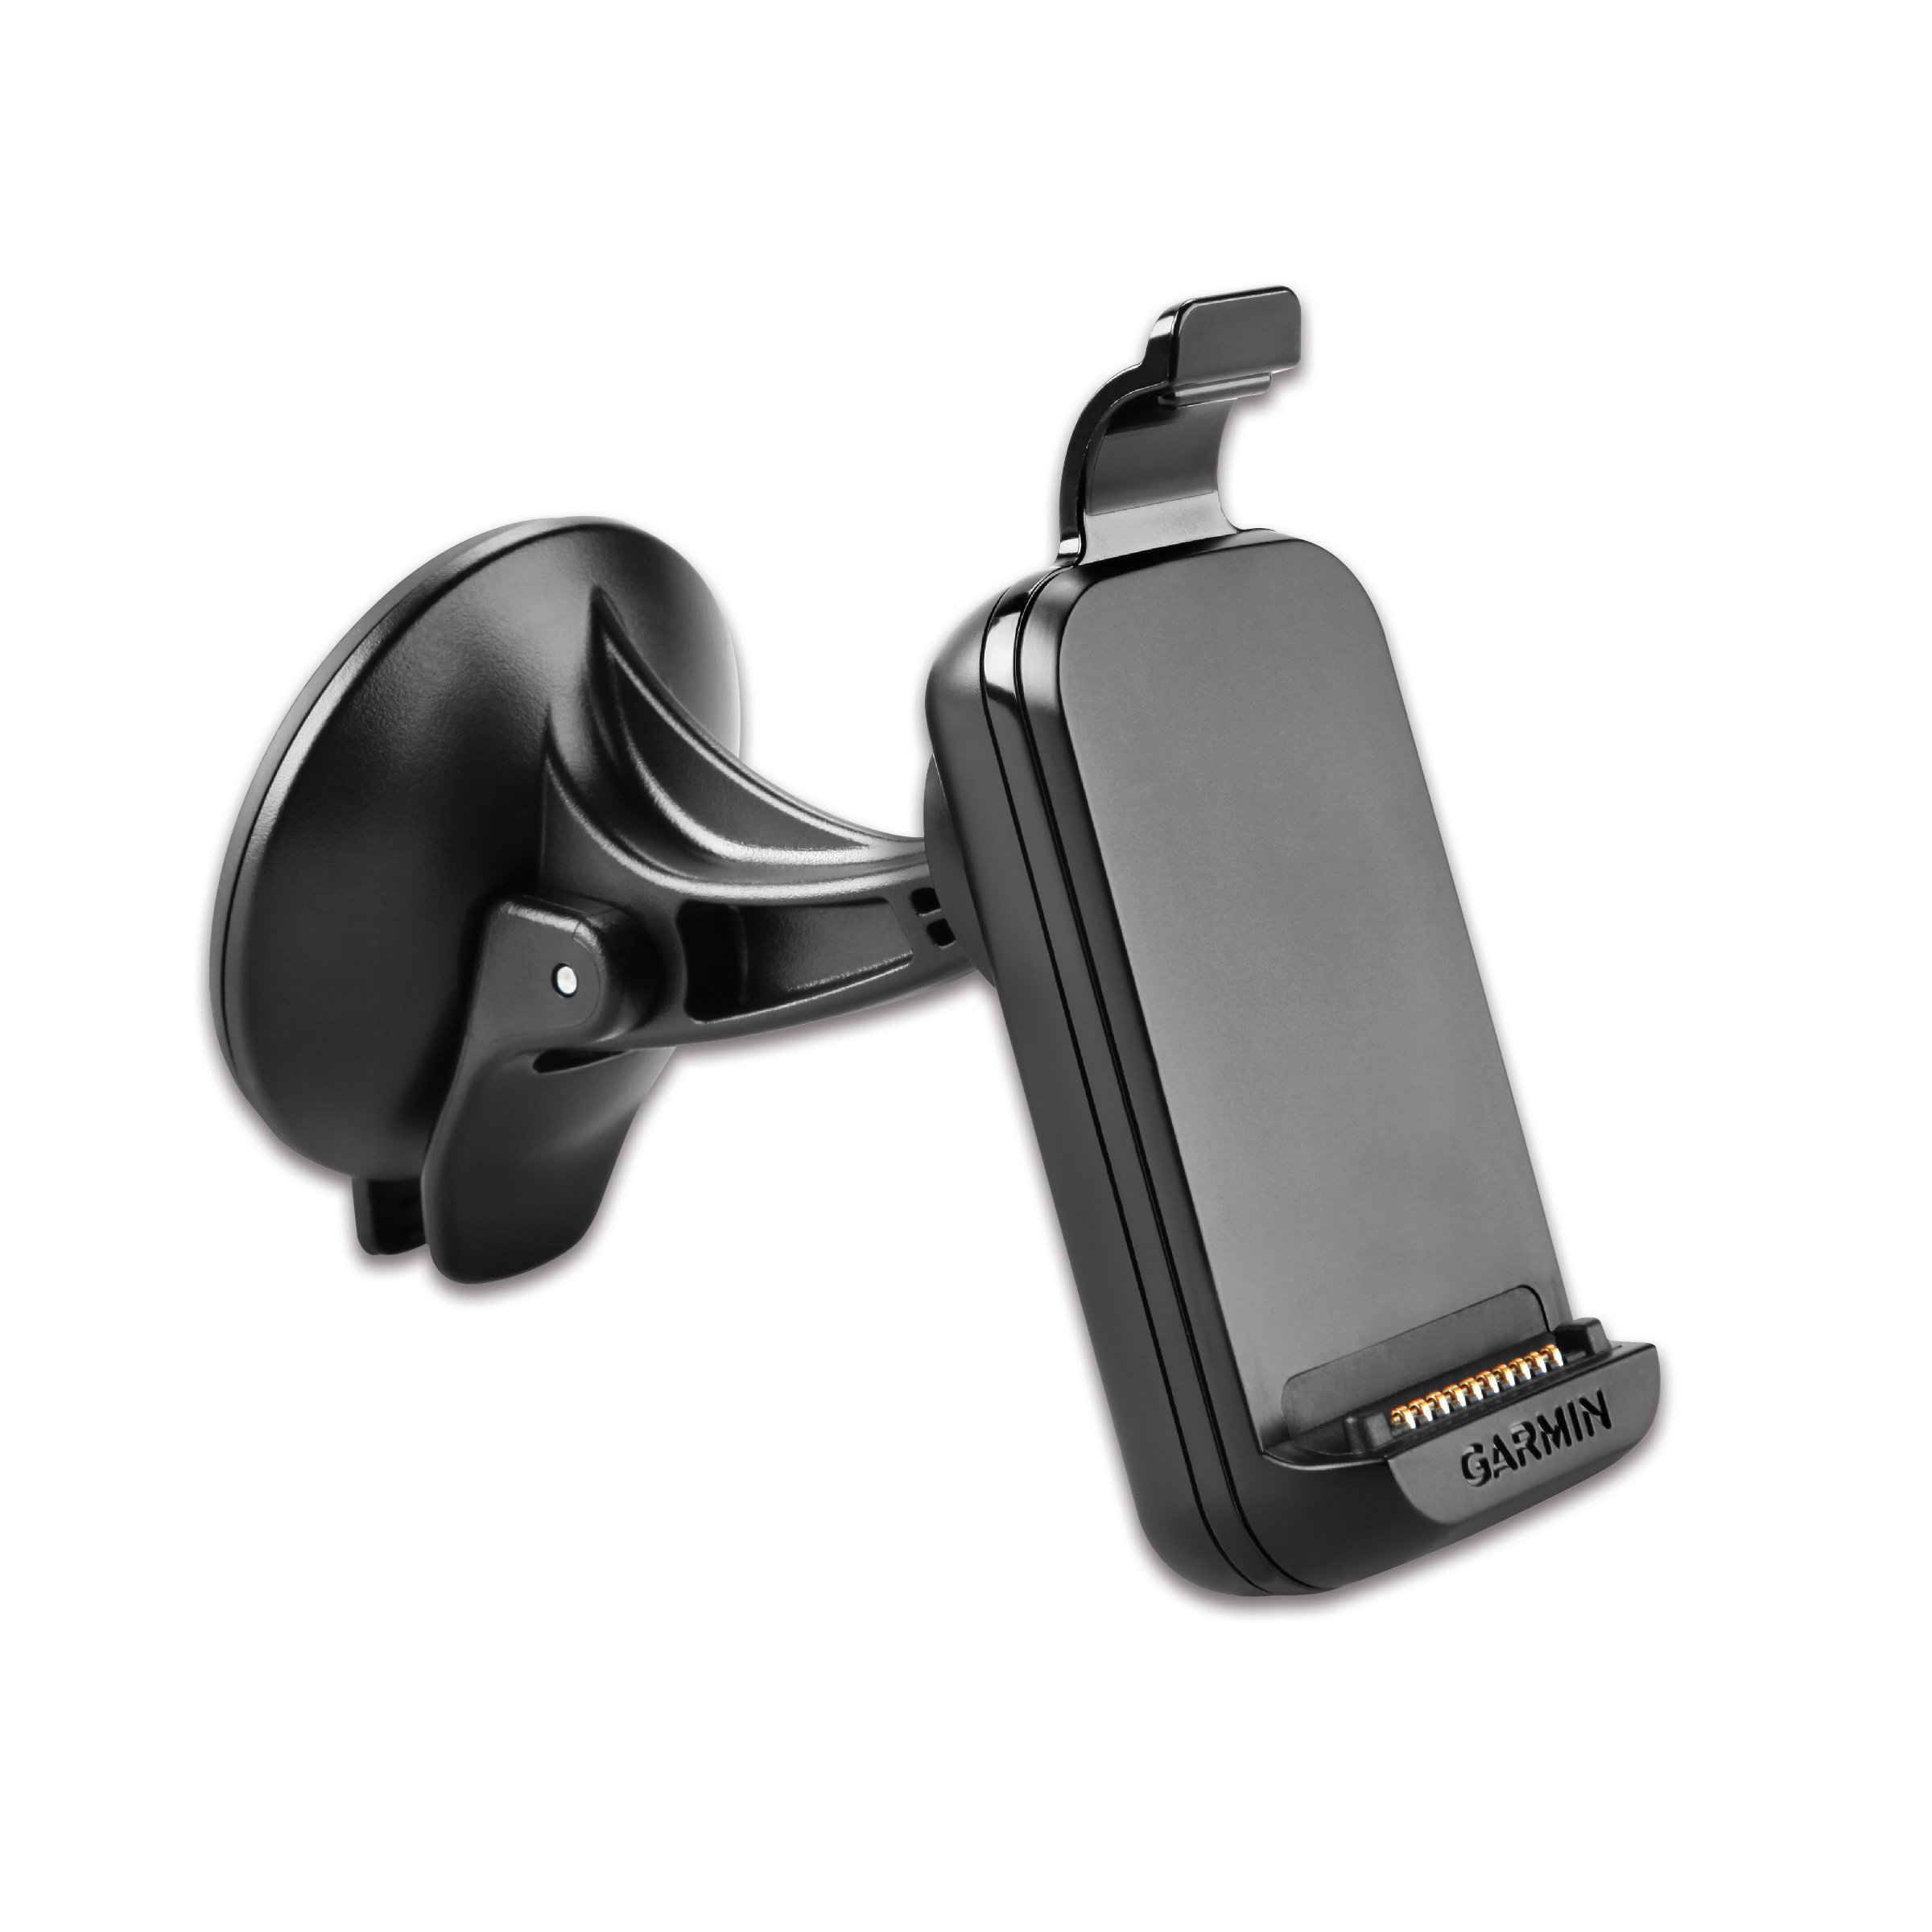 Garmin Powered Suction Cup Mount with Speaker